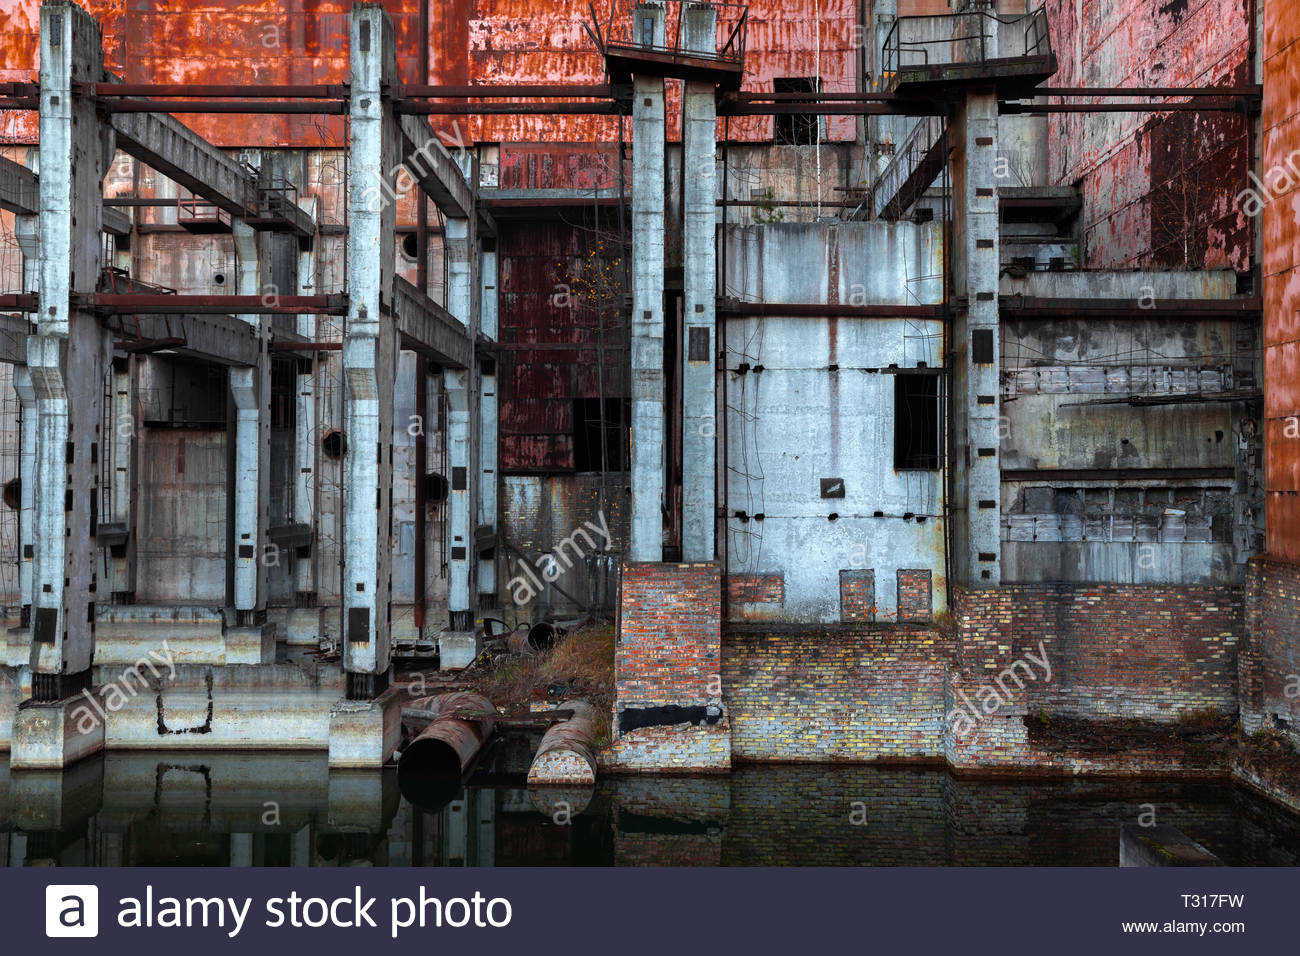 Construction site of Reactor Number 5 at Chernobyl Nuclear Power Plant, 2019 photo - Stock Image